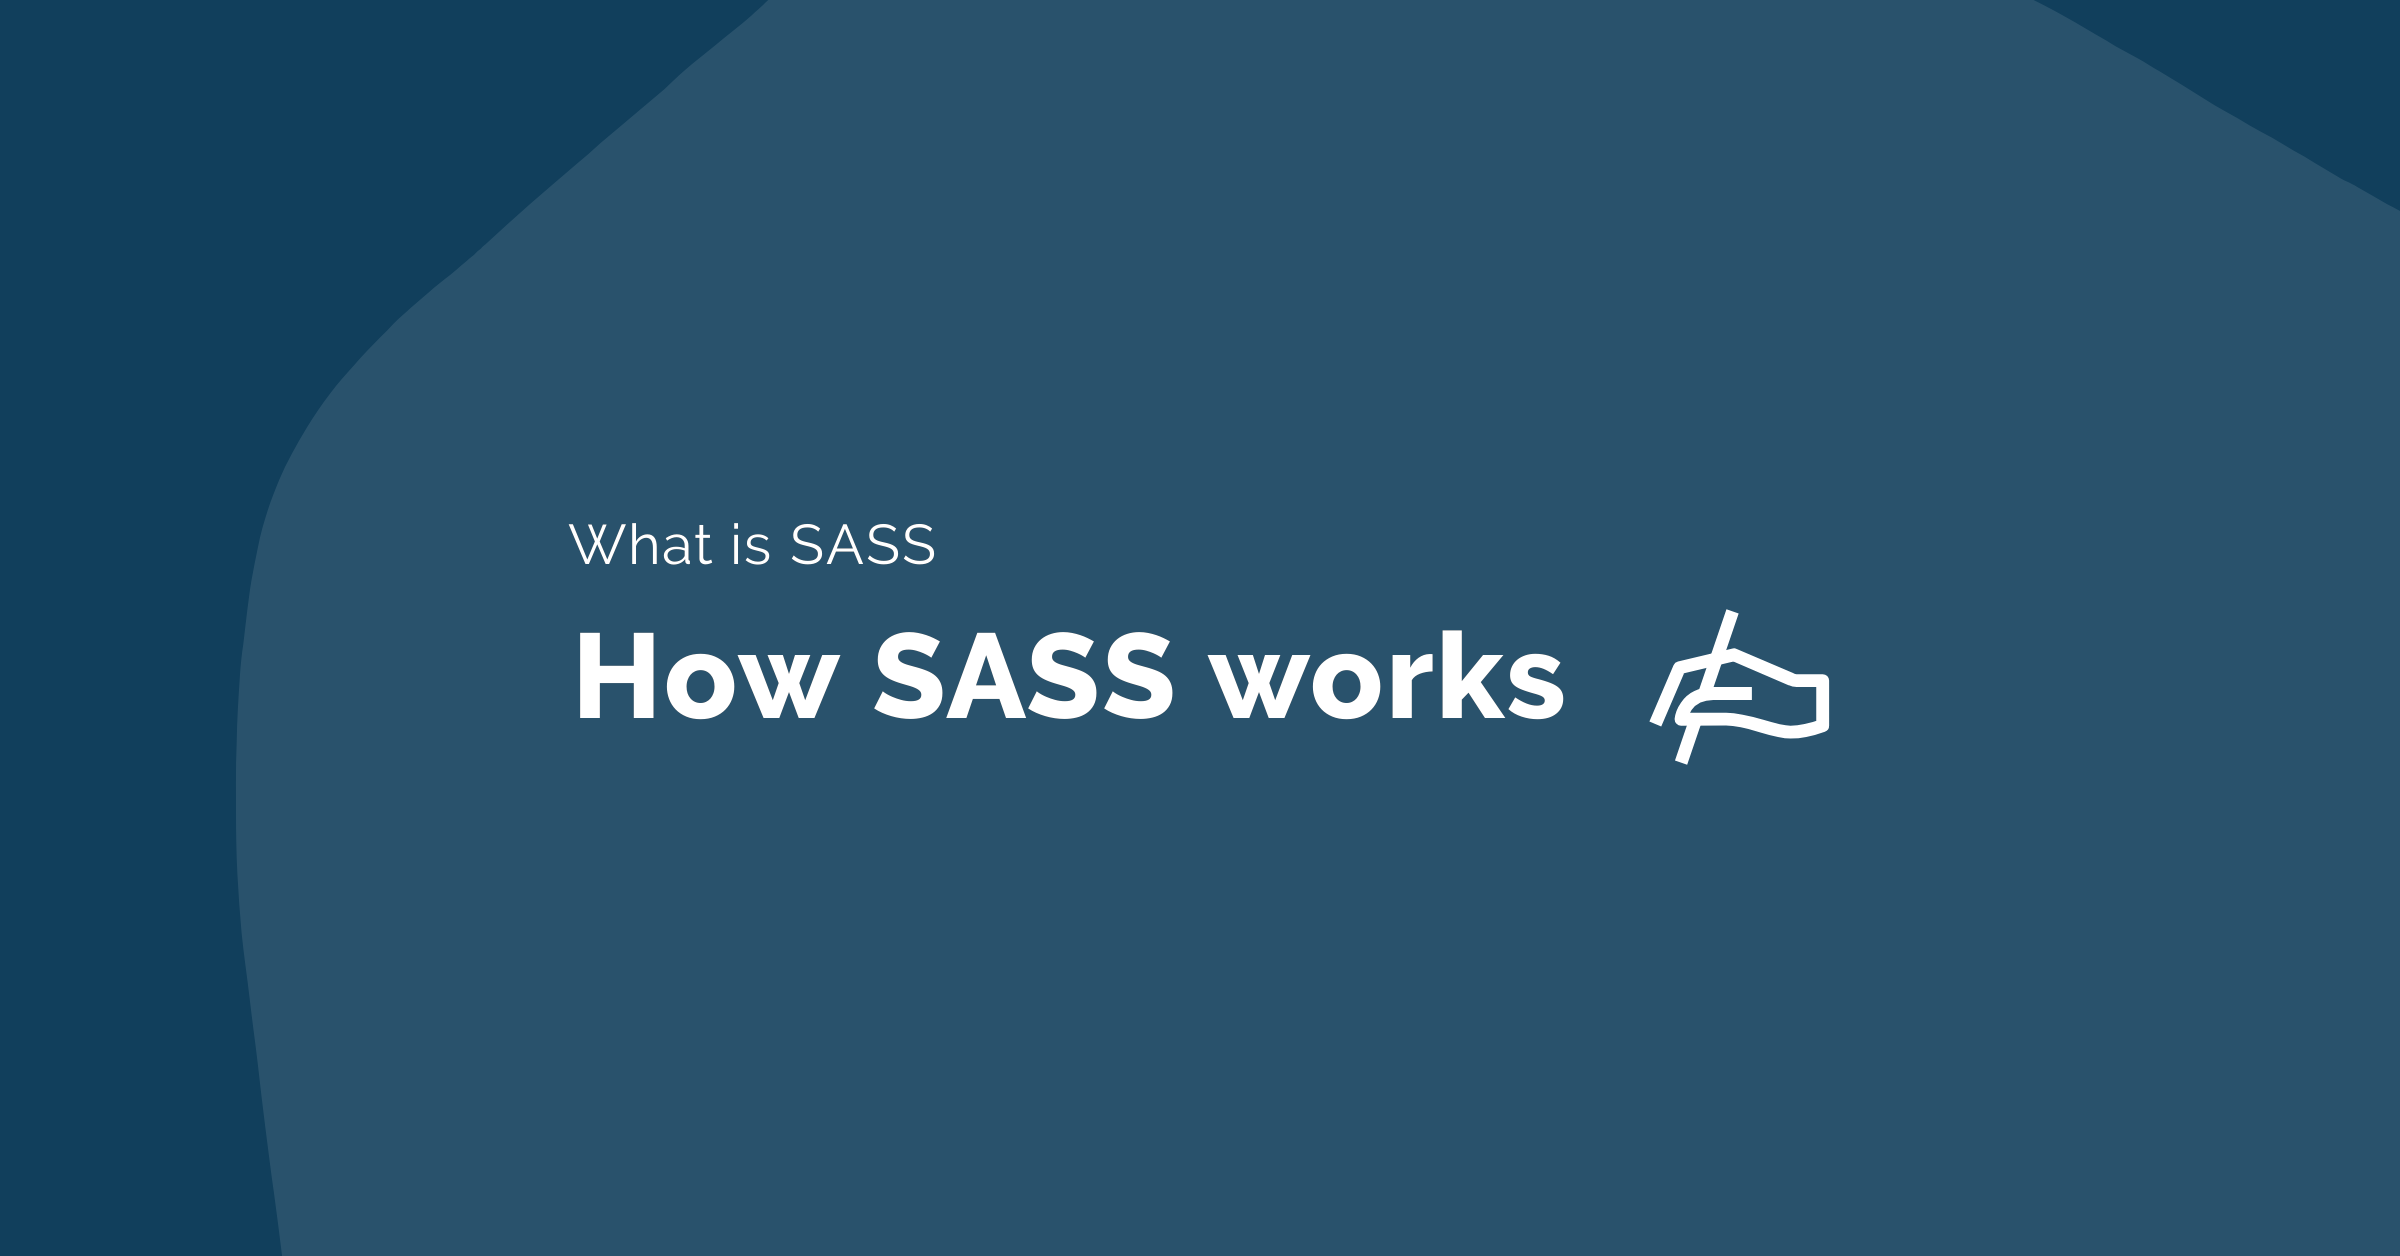 What is SASS and how SASS works